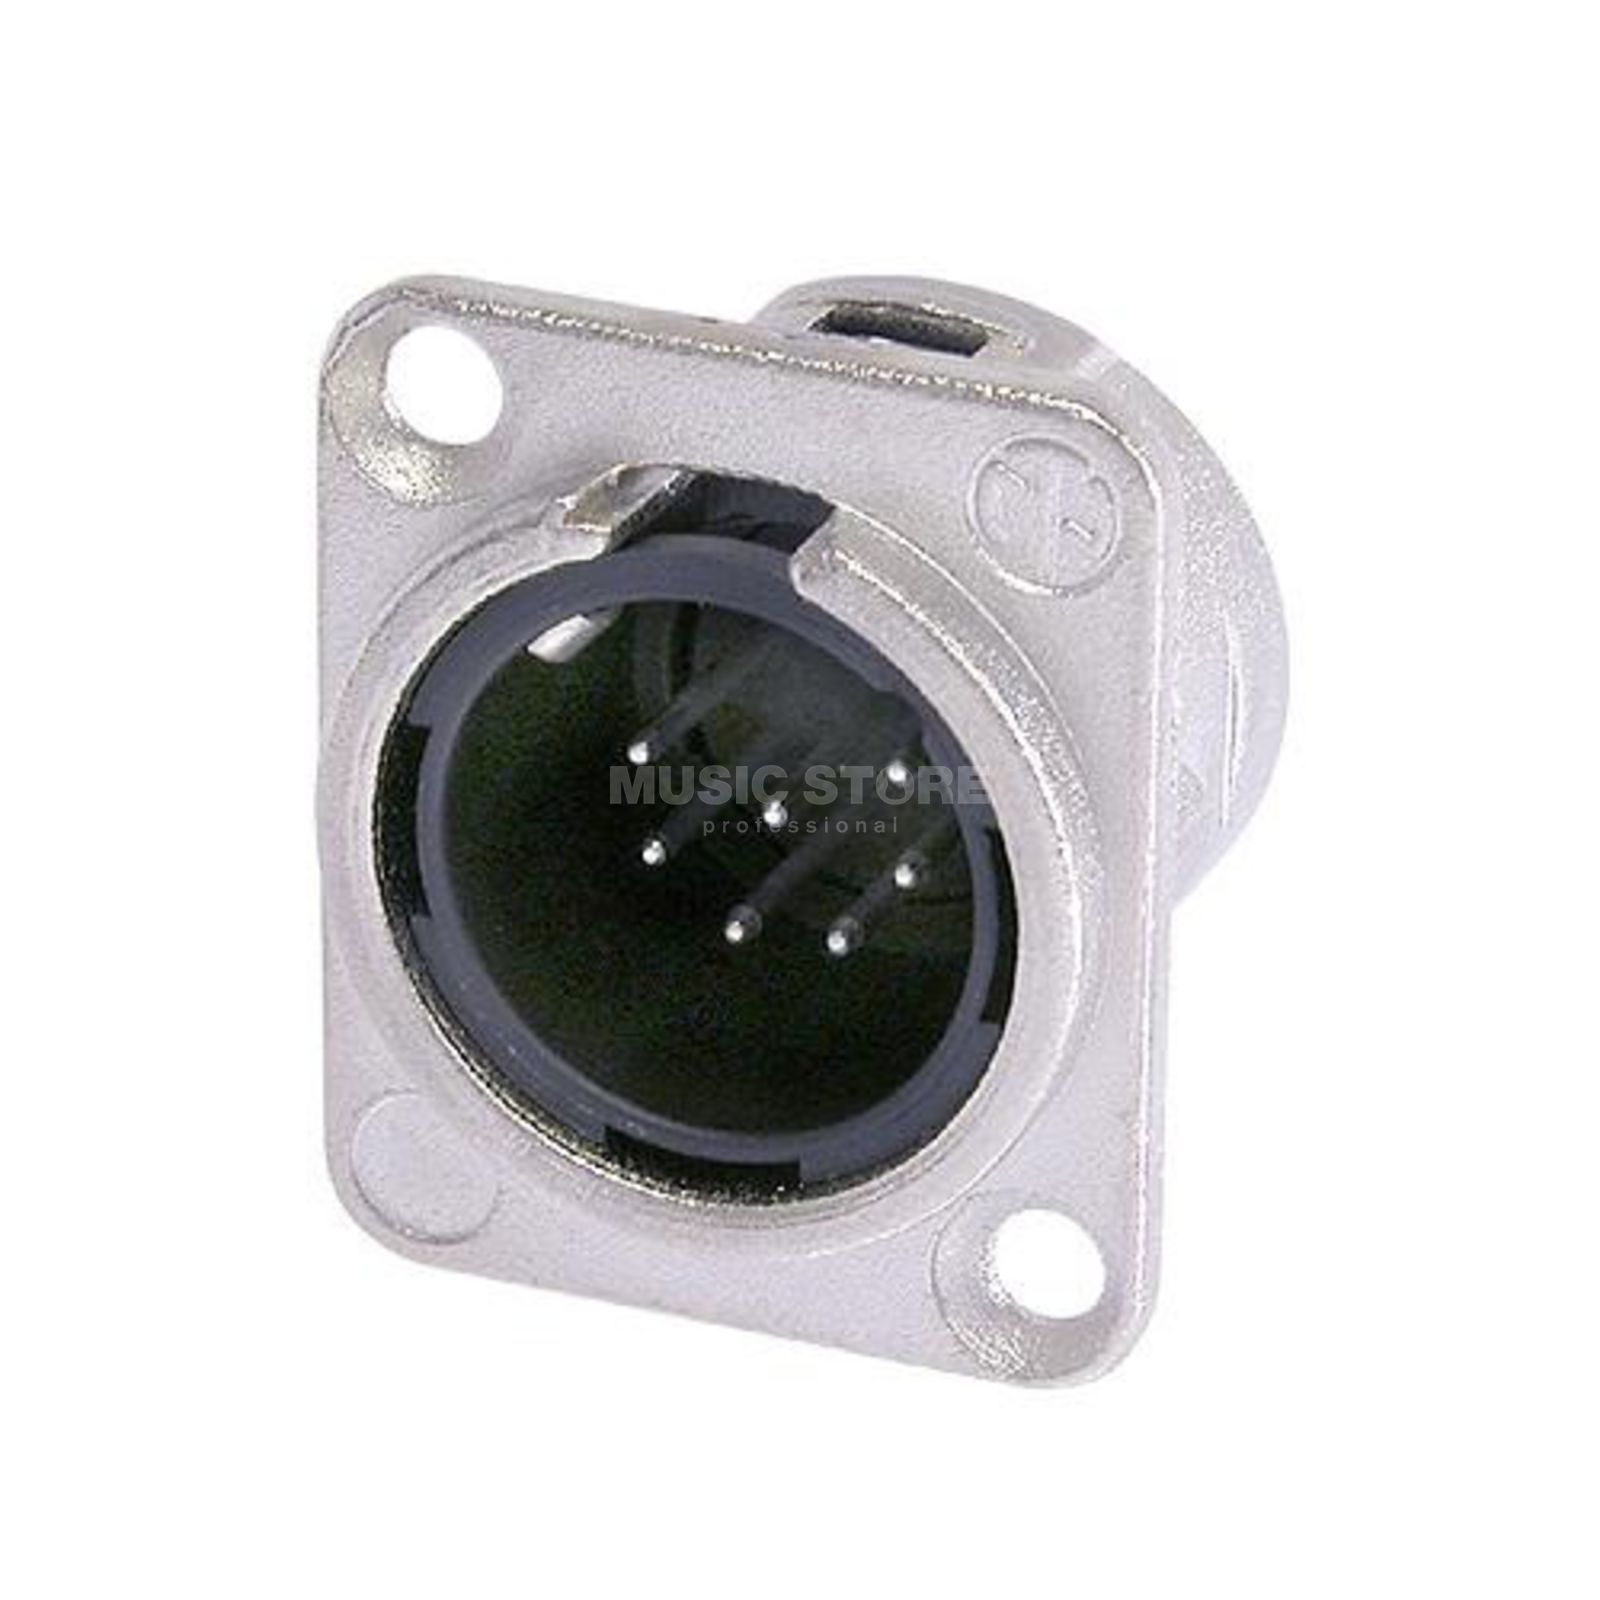 Neutrik NC7MD-L-1 Chassisstecker male, 7-polig Produktbild